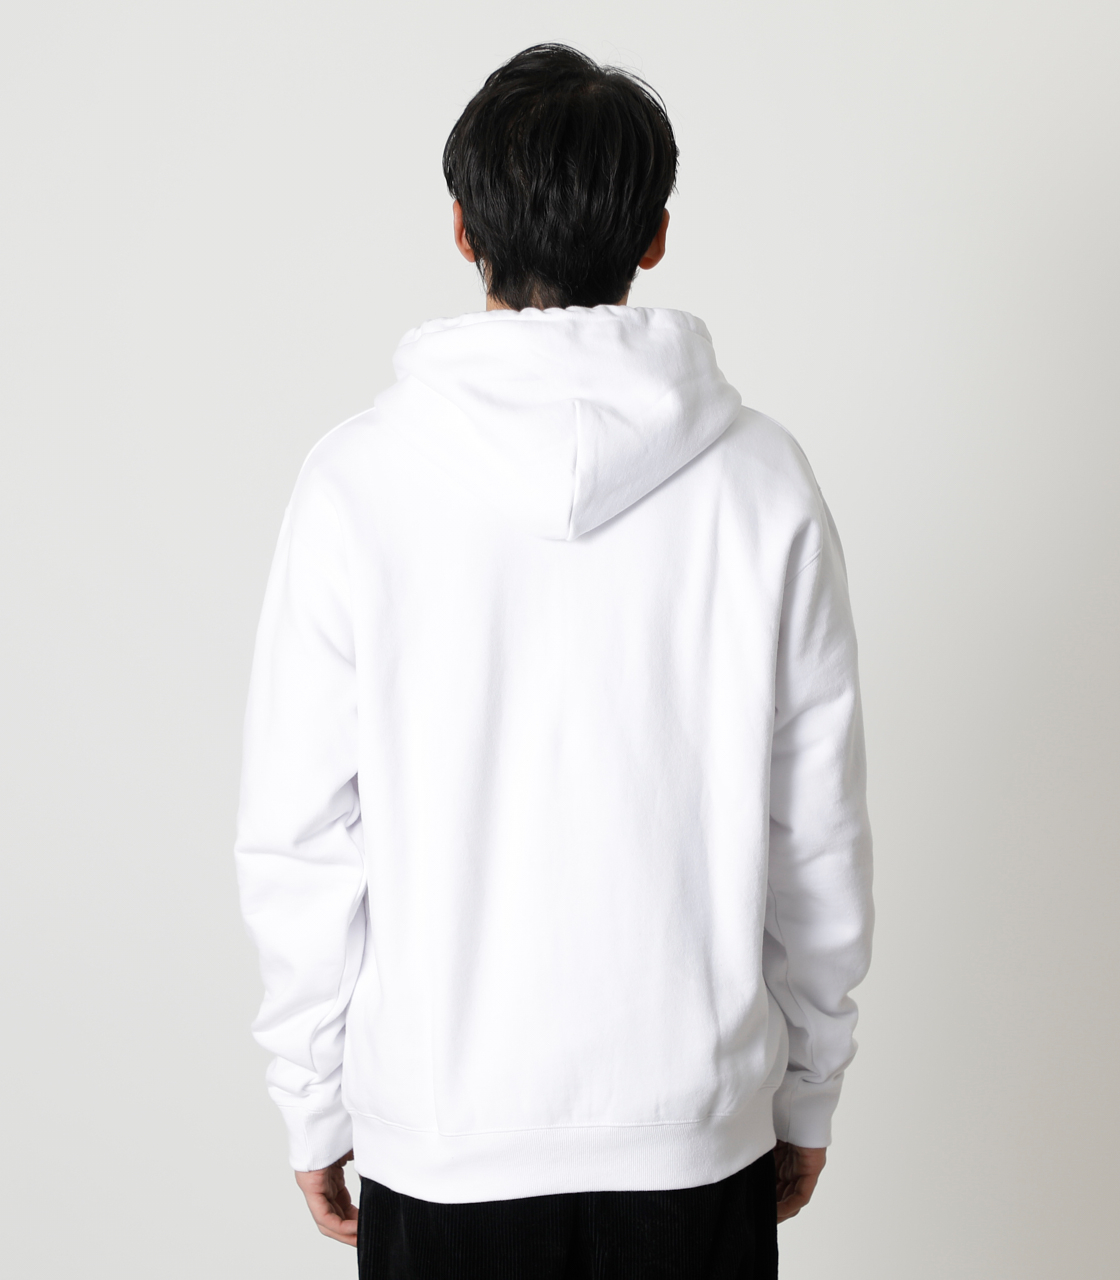 STAY IN POSITIVE HOODIE/ステイインポジティブフーディ 詳細画像 WHT 7